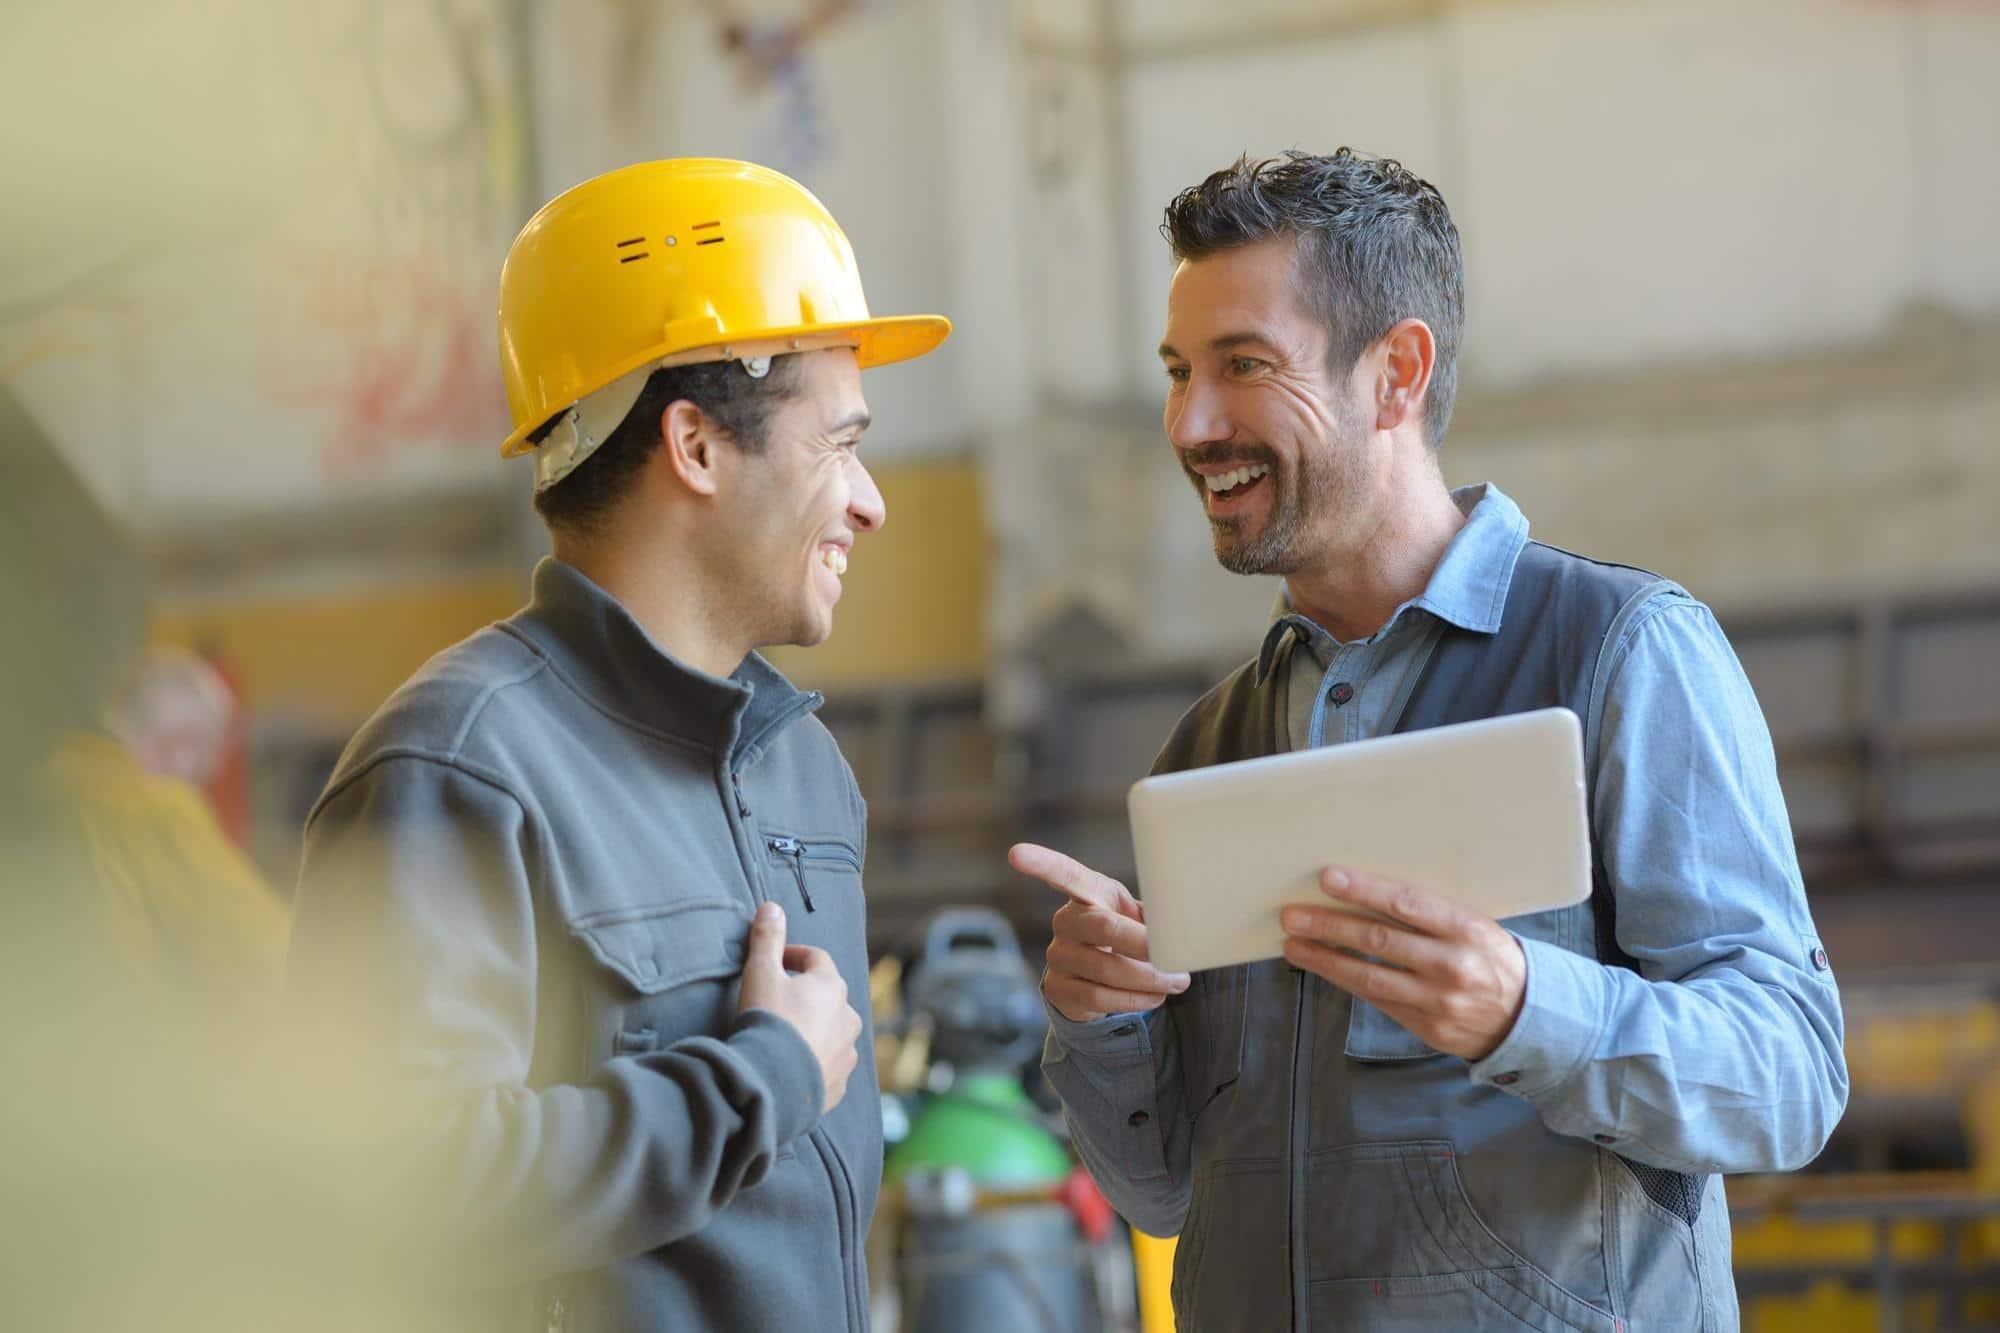 stock-photo-workers-talking-and-laughing-at-a-factory-648243124-550482-edited.jpg